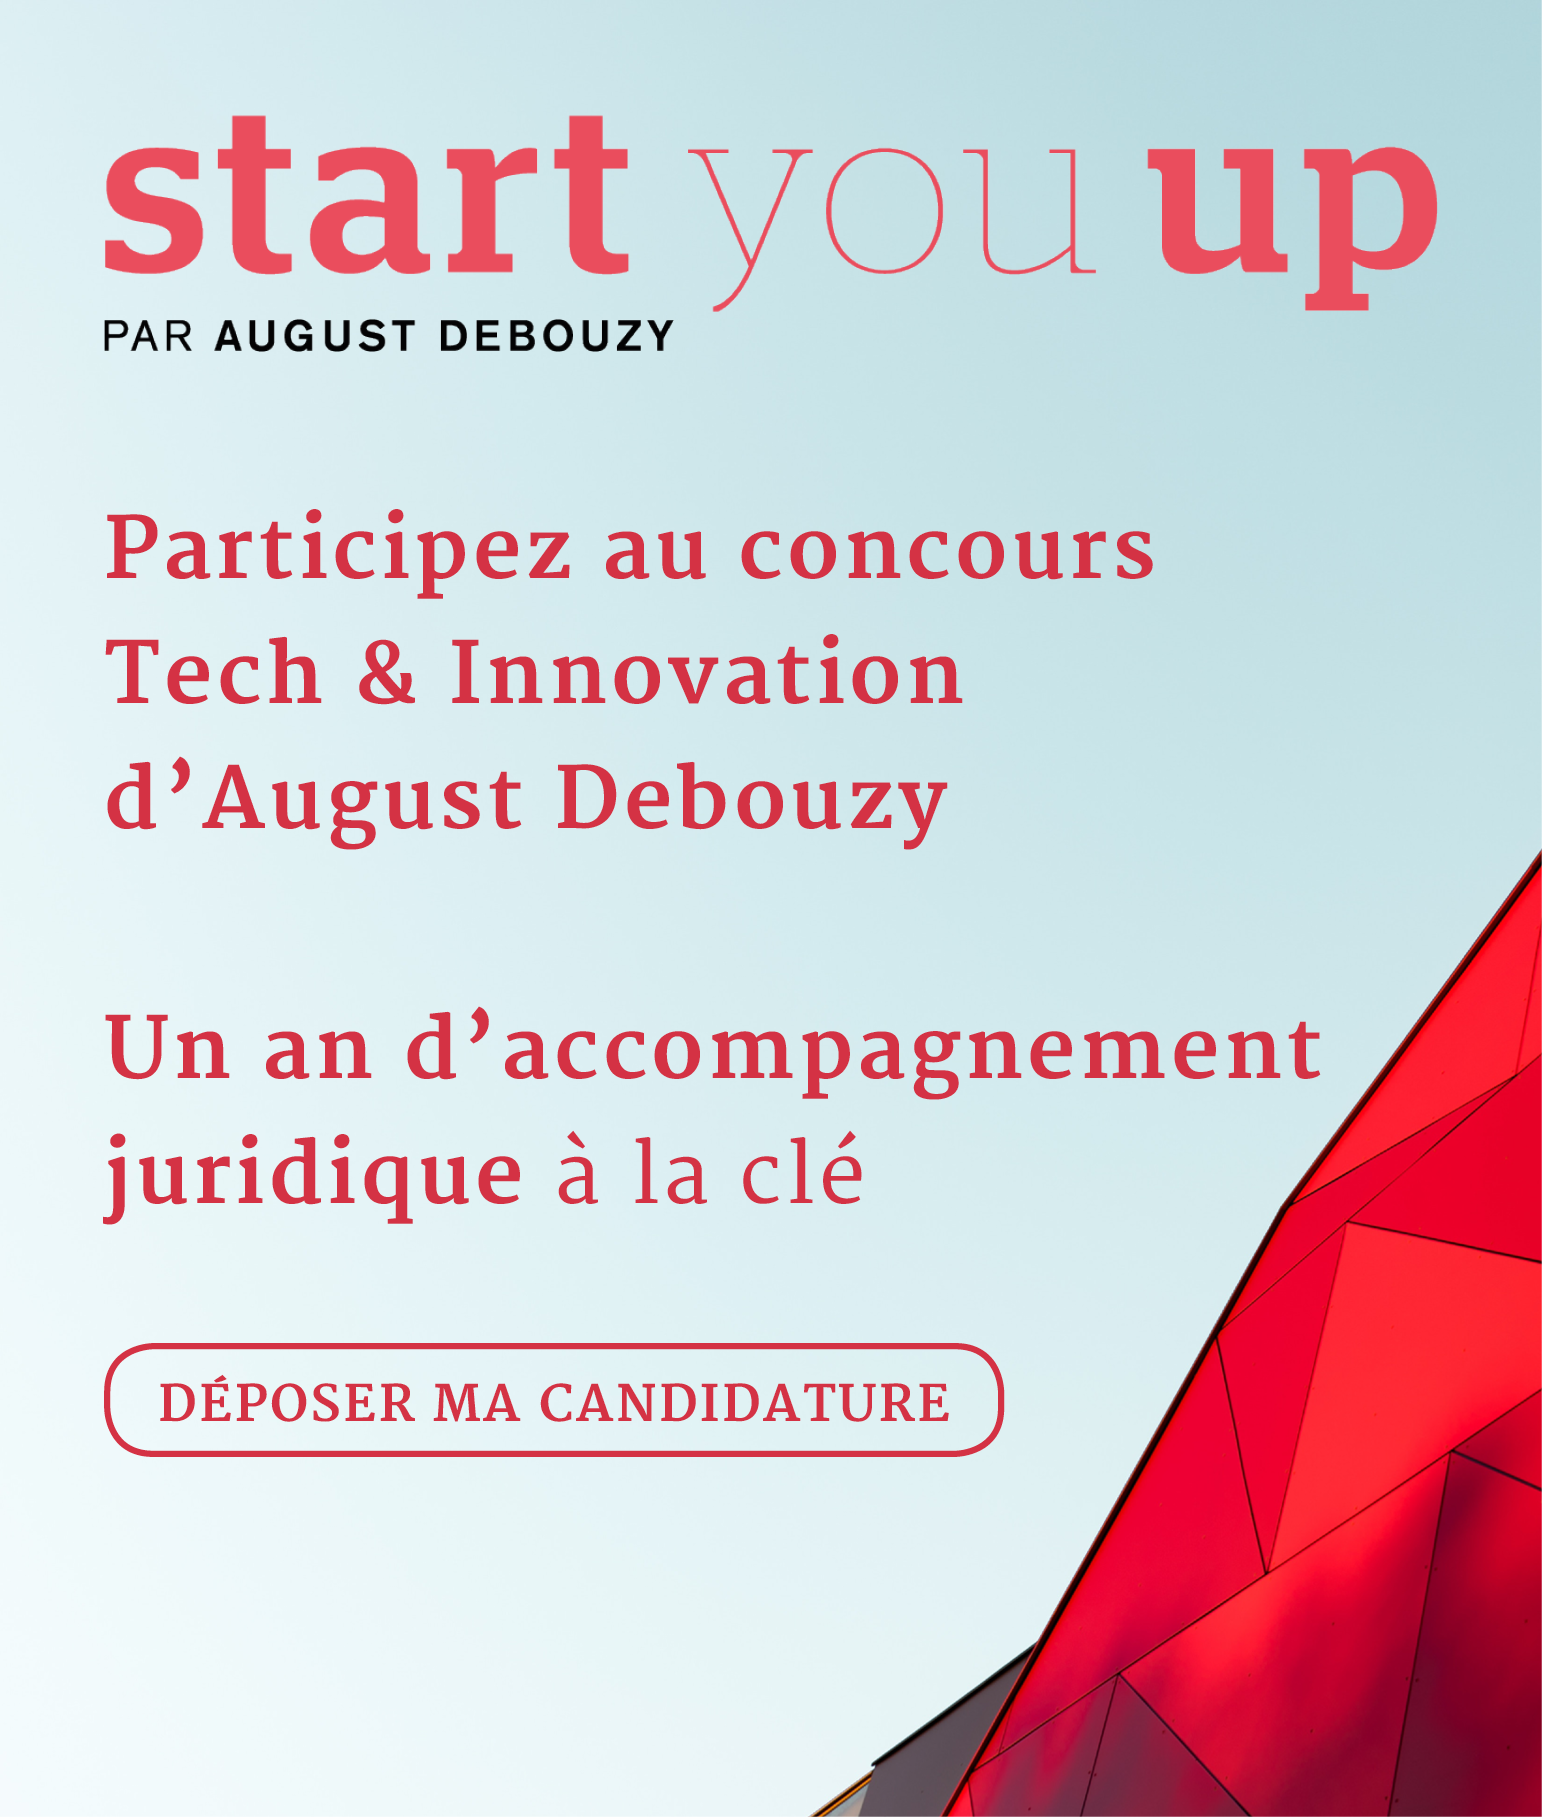 StartYouUp Concours